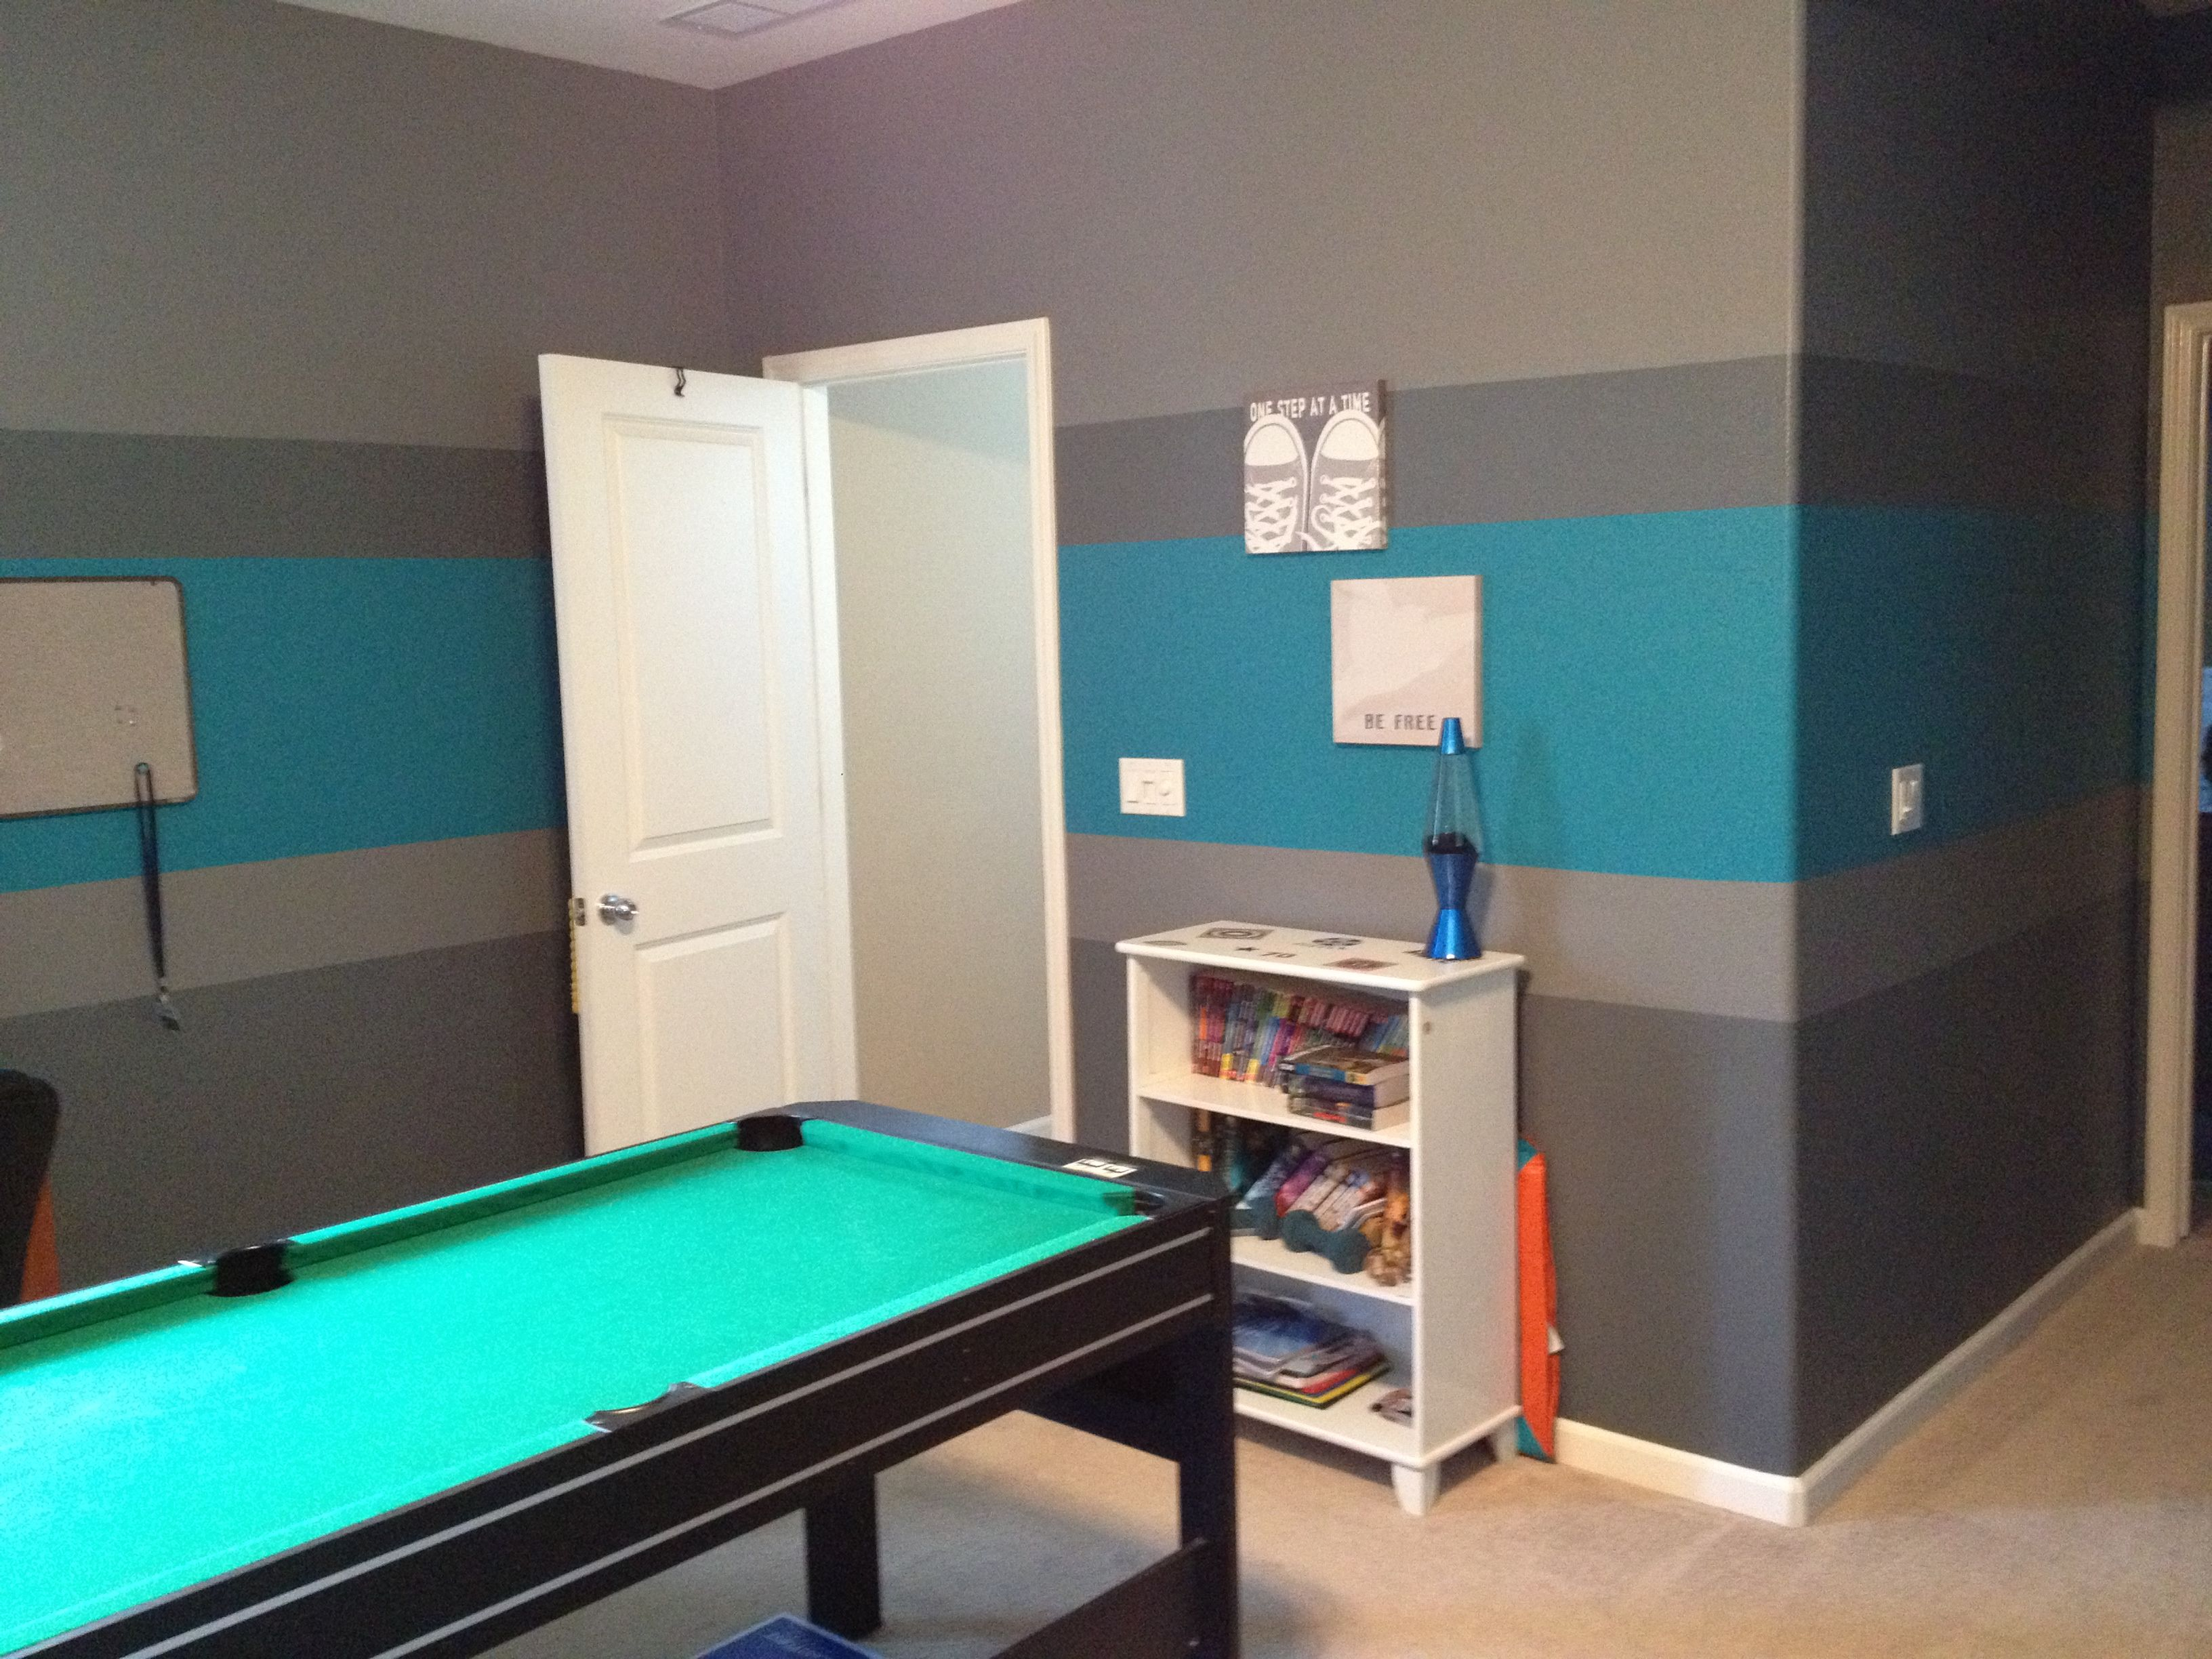 Boy Bedroom   The Ultimate Boys Room! Painted With Gray And Turquoise  Stripes!